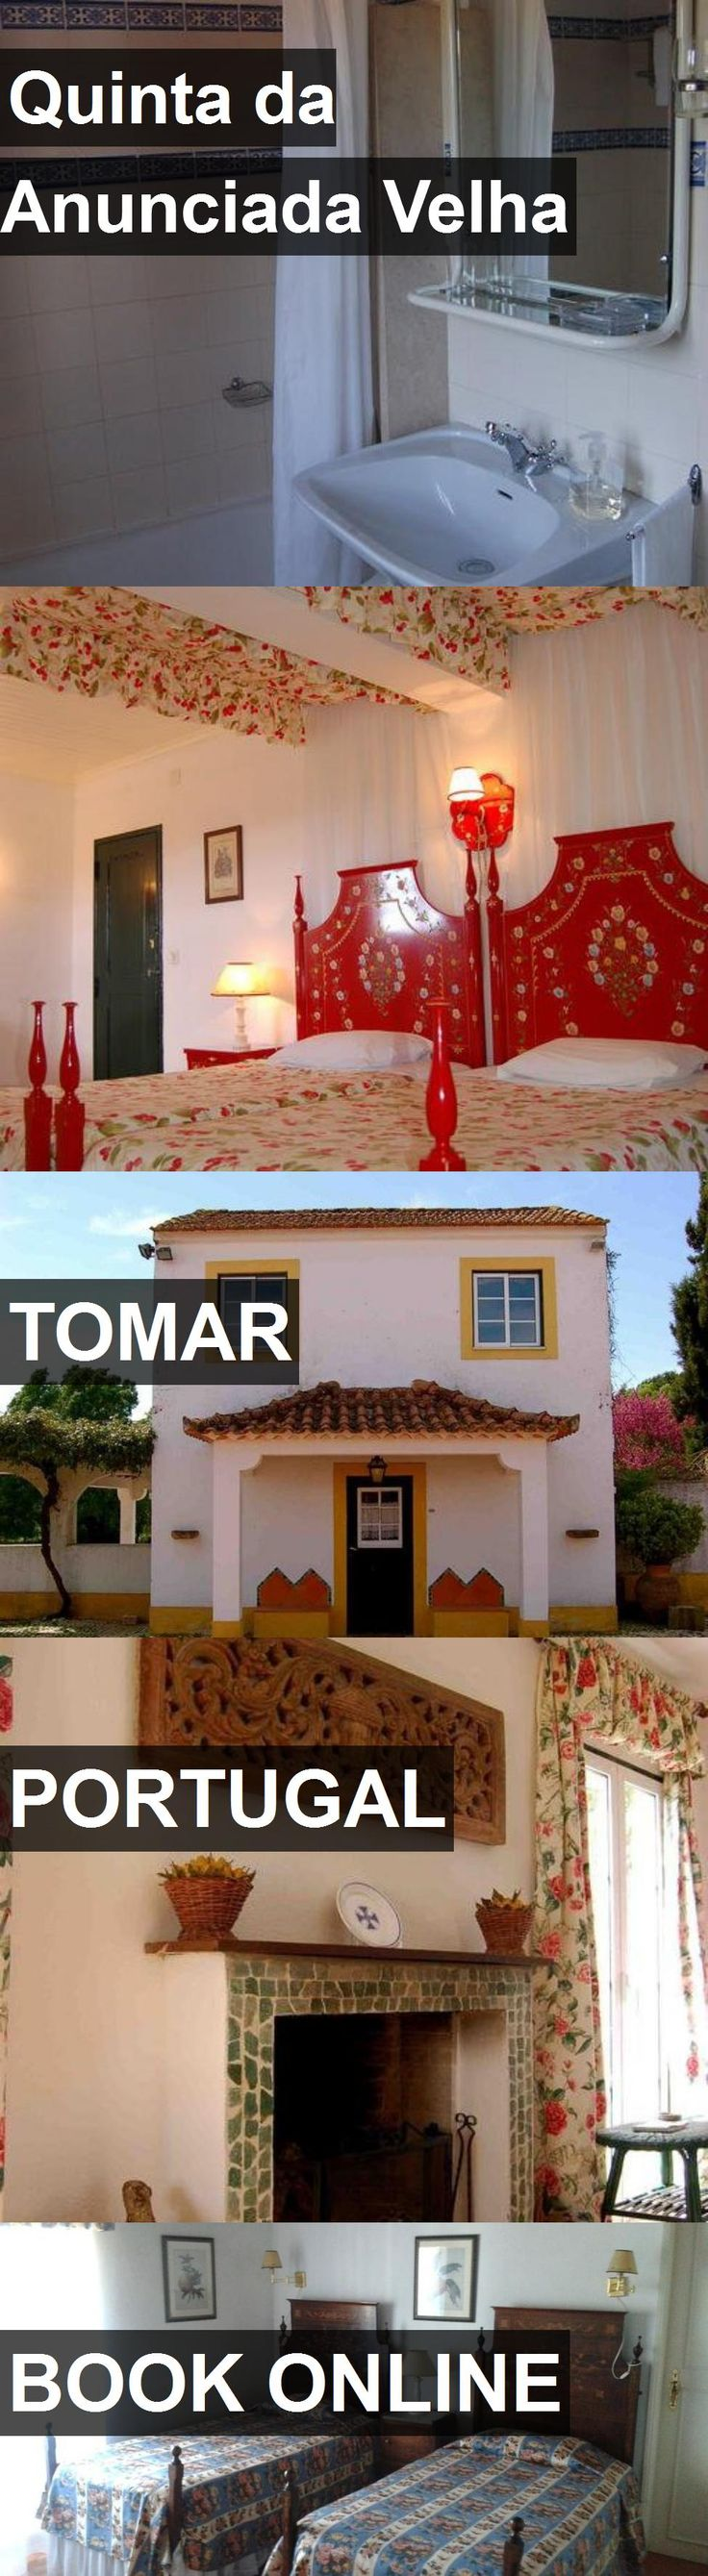 Hotel Quinta da Anunciada Velha in Tomar, Portugal. For more information, photos, reviews and best prices please follow the link. #Portugal #Tomar #travel #vacation #hotel